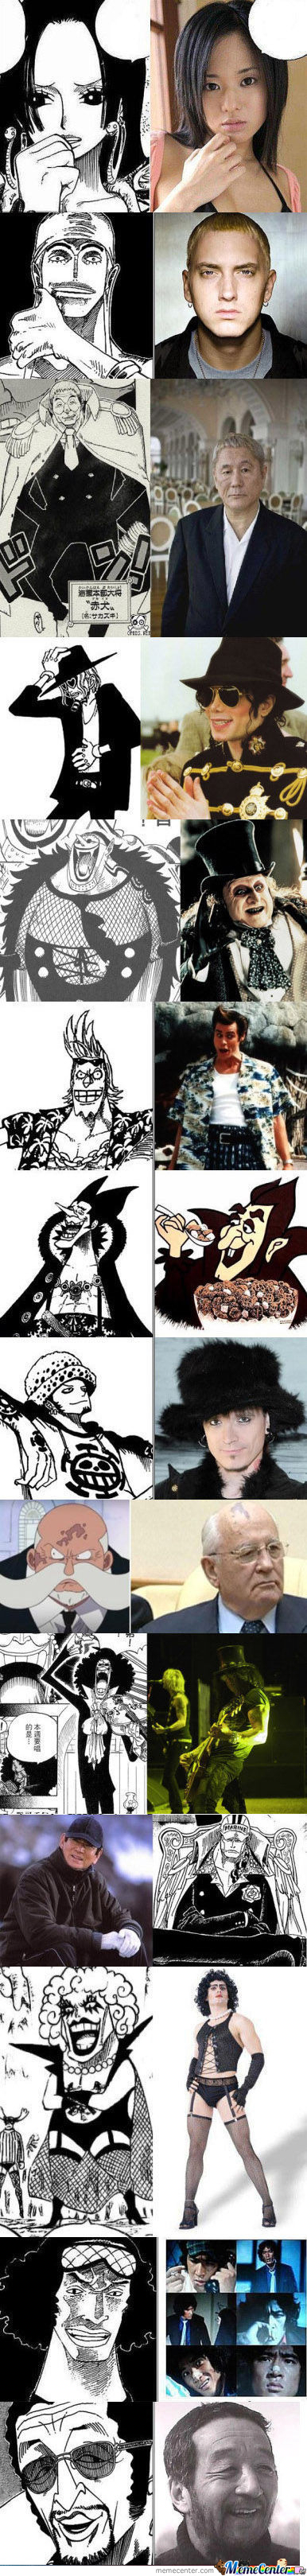 One Piece Look Alikes